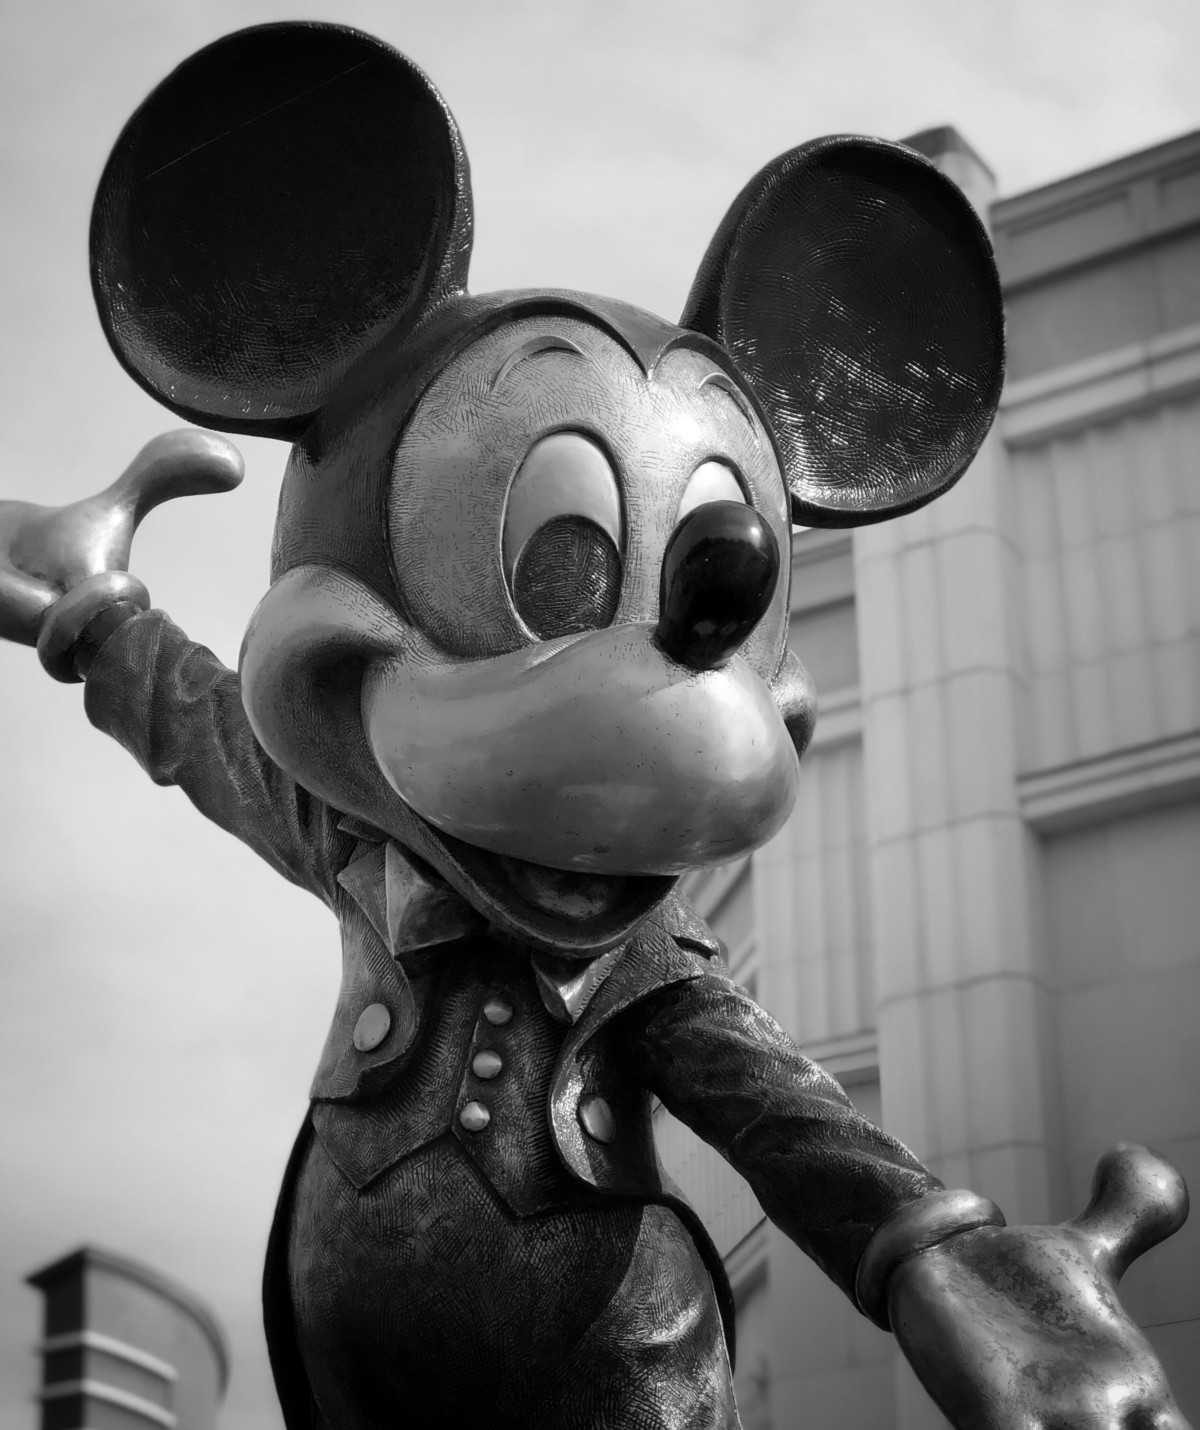 How Disney Instills Greed and Consumerism - Starting at Three Months